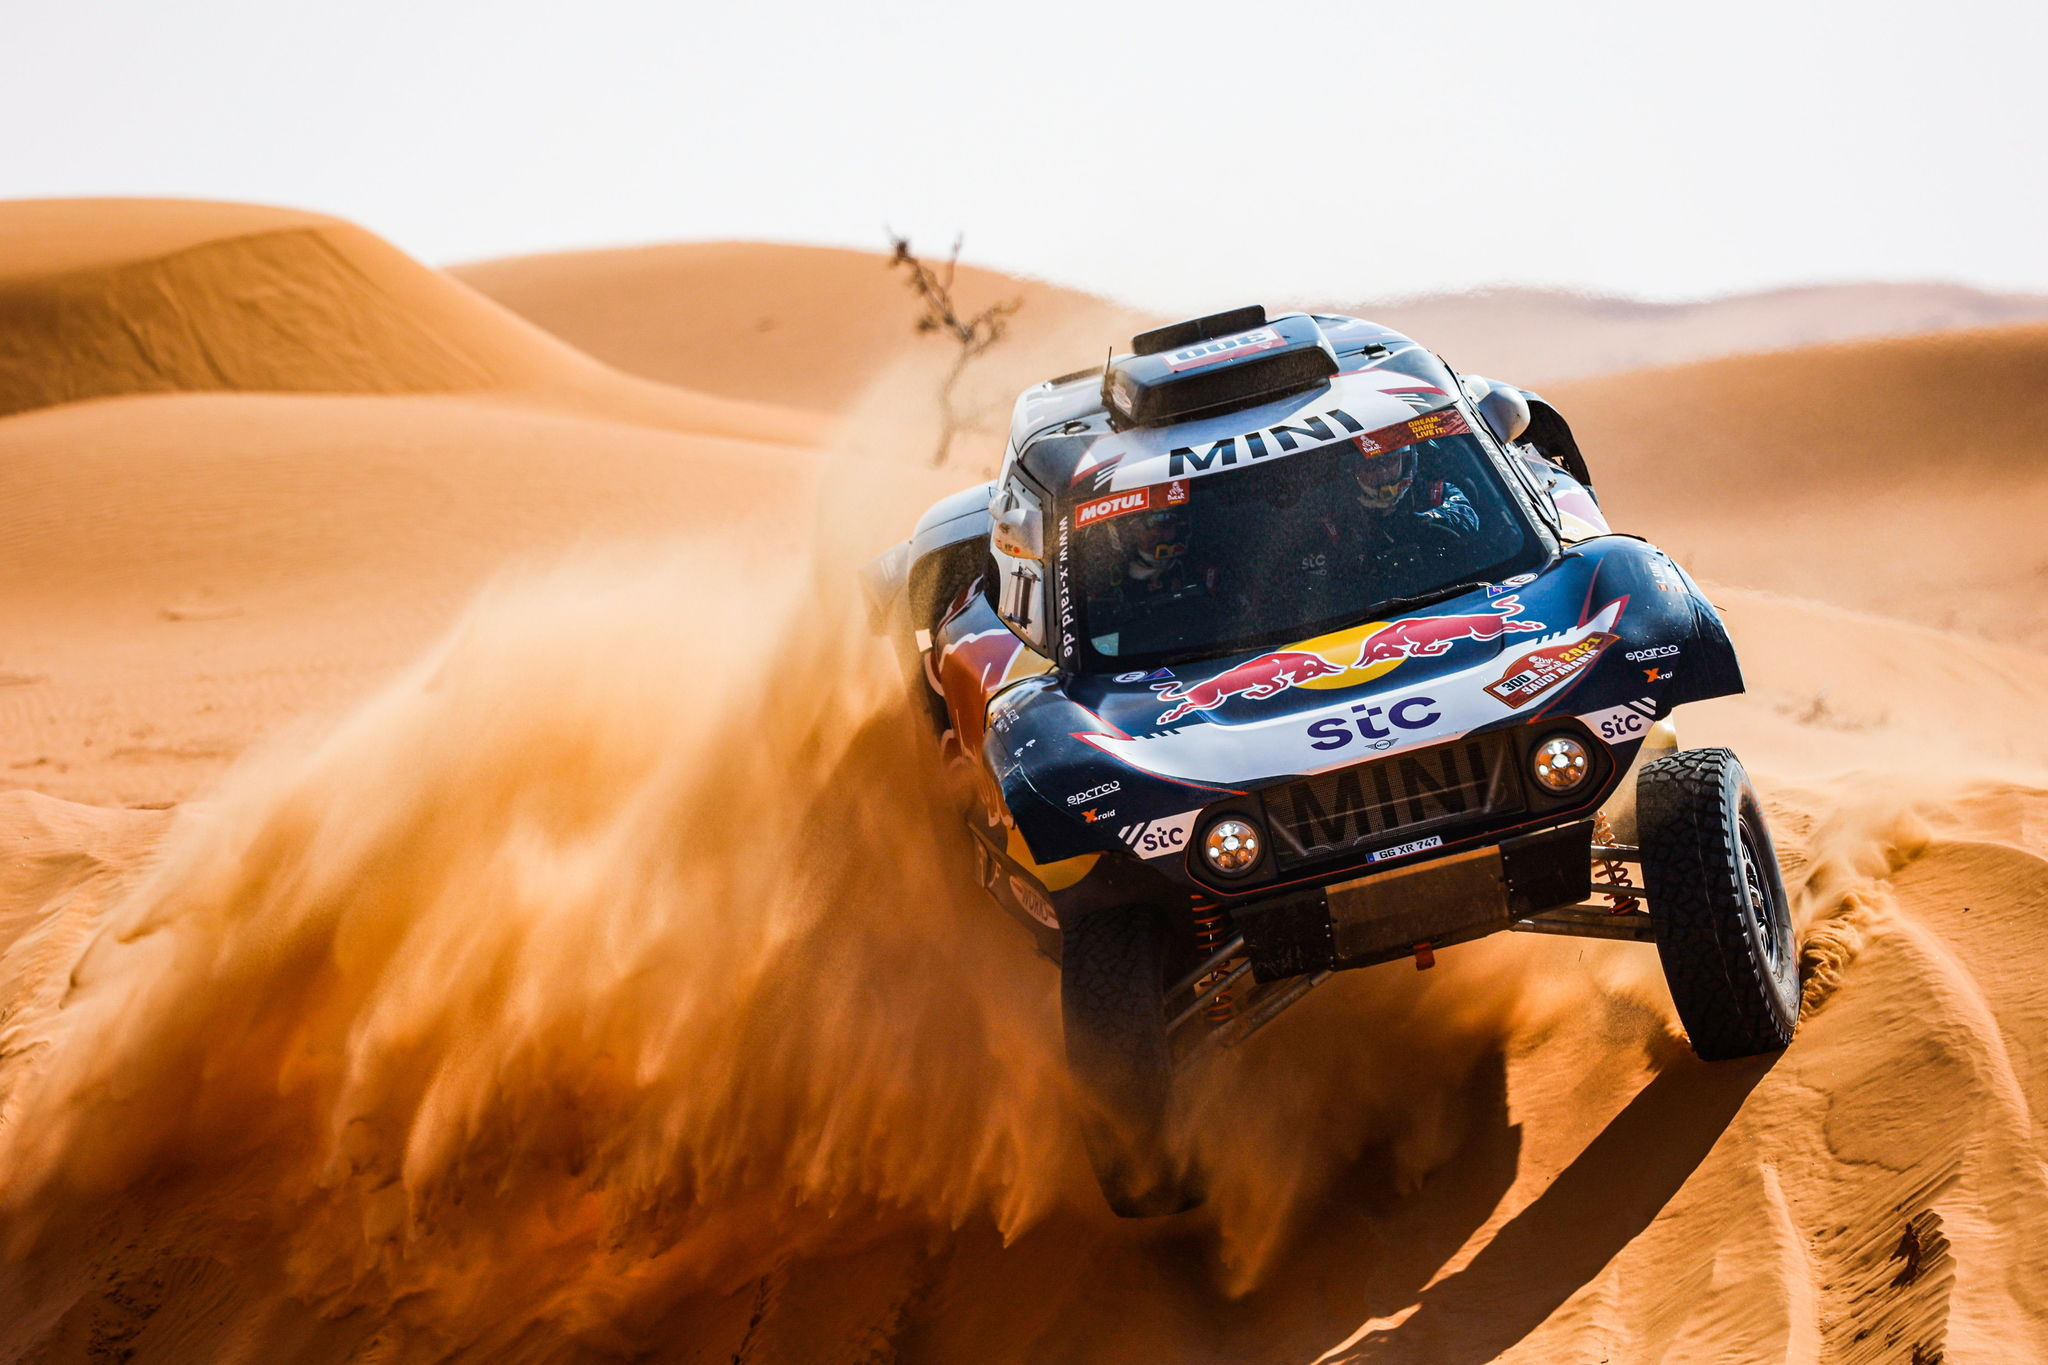 (Saudi Arabia), 08/01/2021.- A handout photo made available by ASO of Carlos lt;HIT gt;Sainz lt;/HIT gt; and Lucas Cruz Lucas of Spain, Mini, X-Raid Mini JCW Team, in action during the 6th stage of the Dakar 2021 between Al Qaisumah and Hail, in Saudi Arabia on January 8, 2021. (Arabia Saudita, España) EFE/EPA/Florent Gooden HANDOUT via ASO SHUTTERSTOCK OUT HANDOUT EDITORIAL USE ONLY/NO SALES/NO ARCHIVES